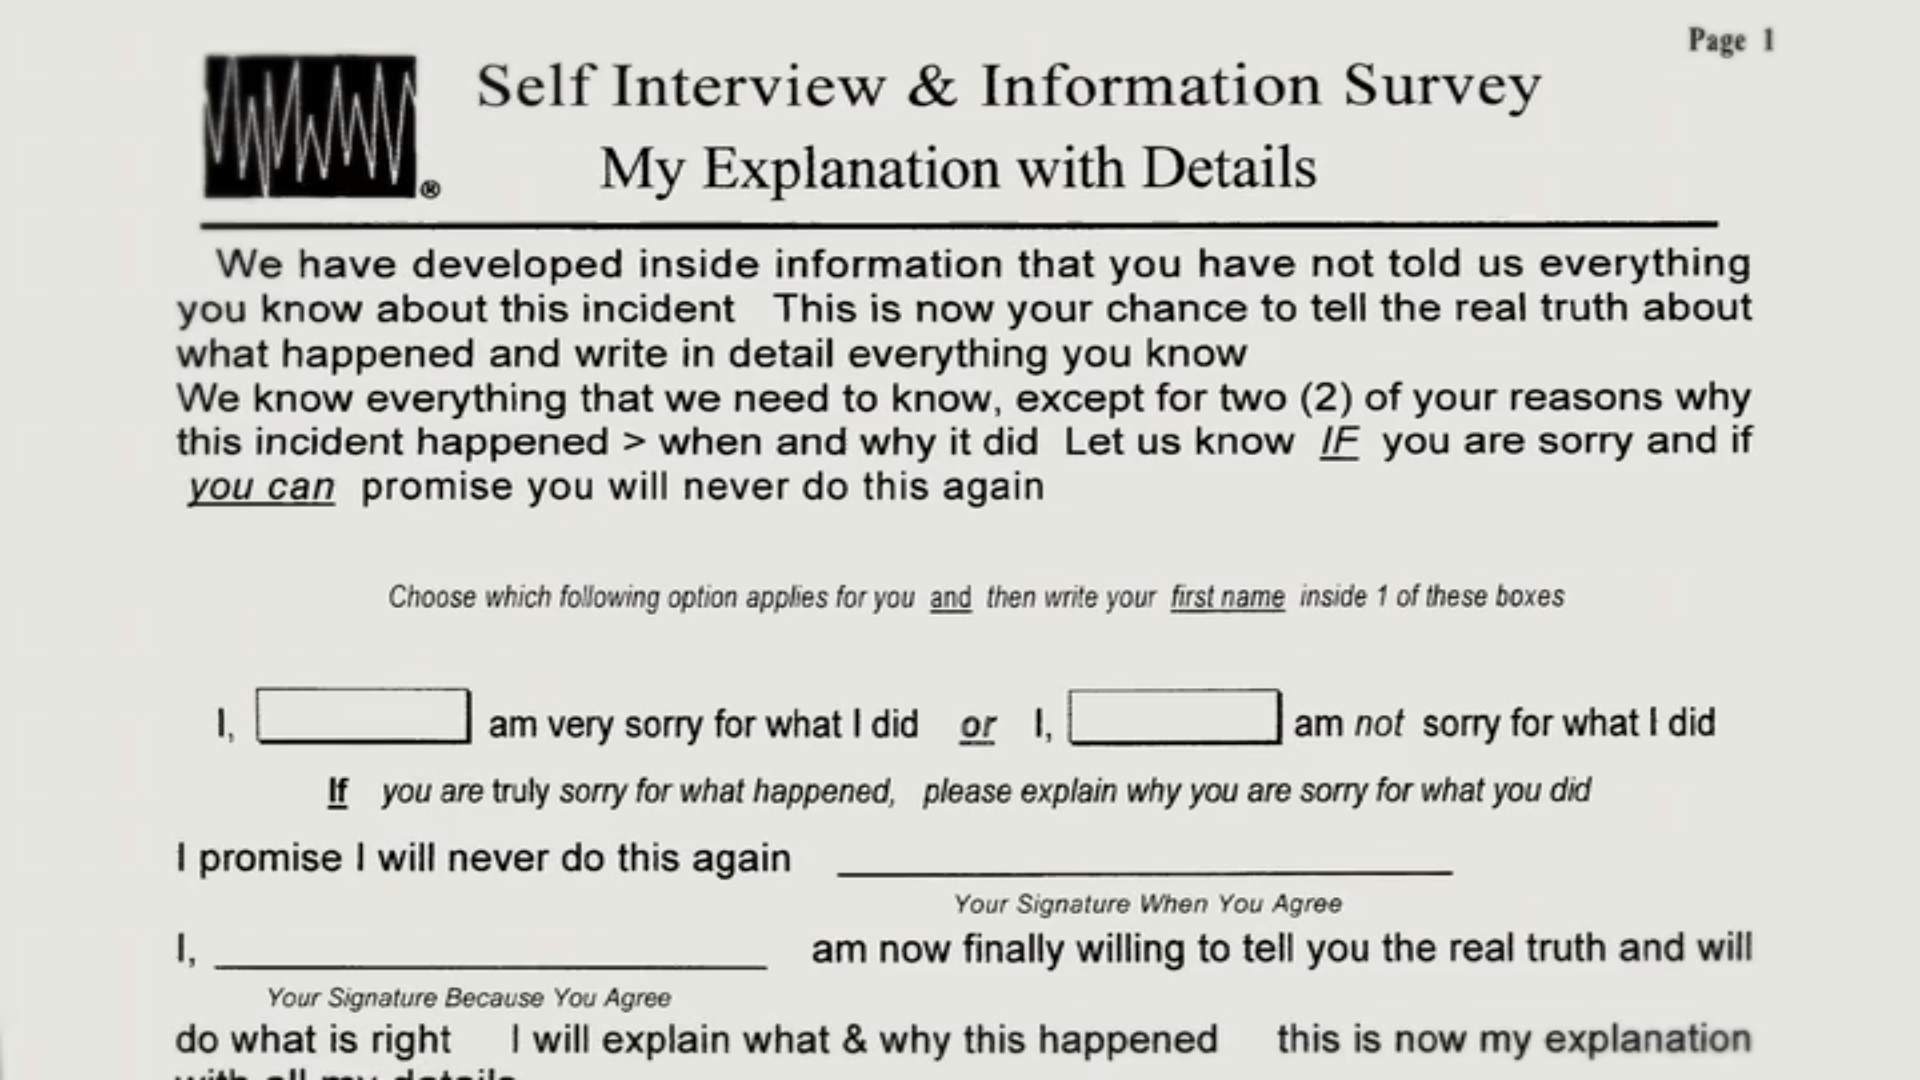 The form Michael O'Kelly gave Brendan Dassey